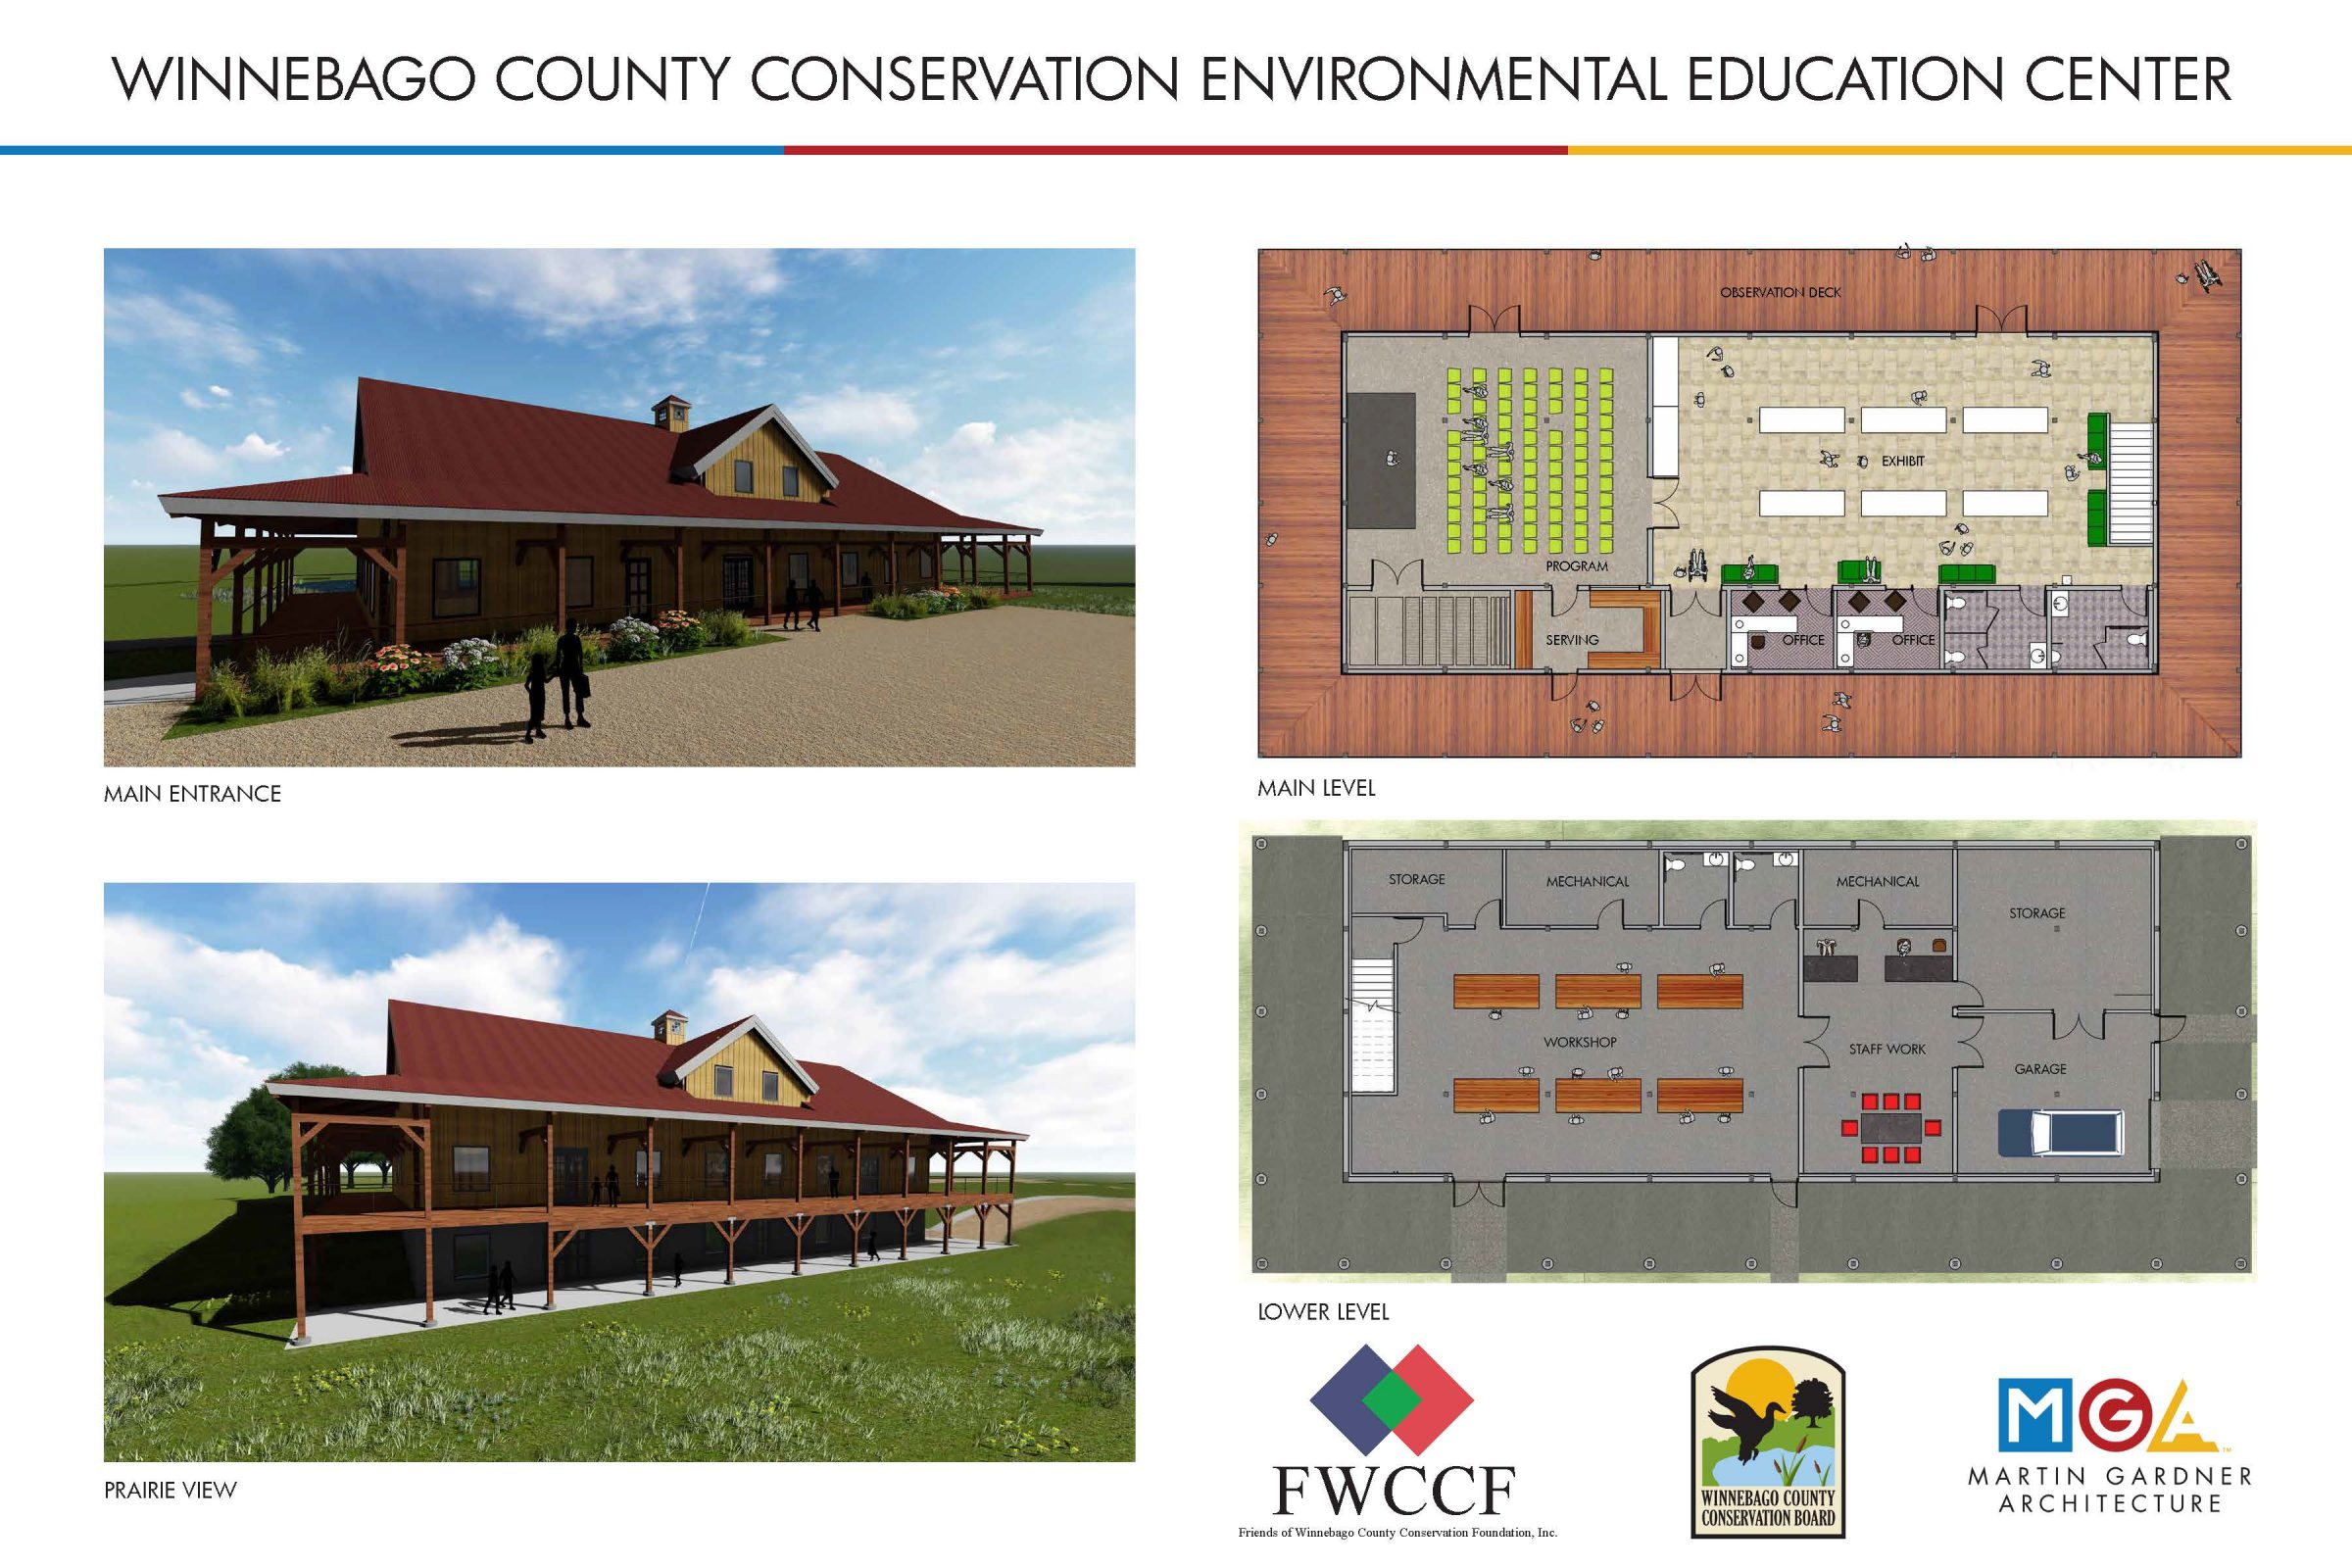 Winnebago County Conservation Environmental Education Center Draft